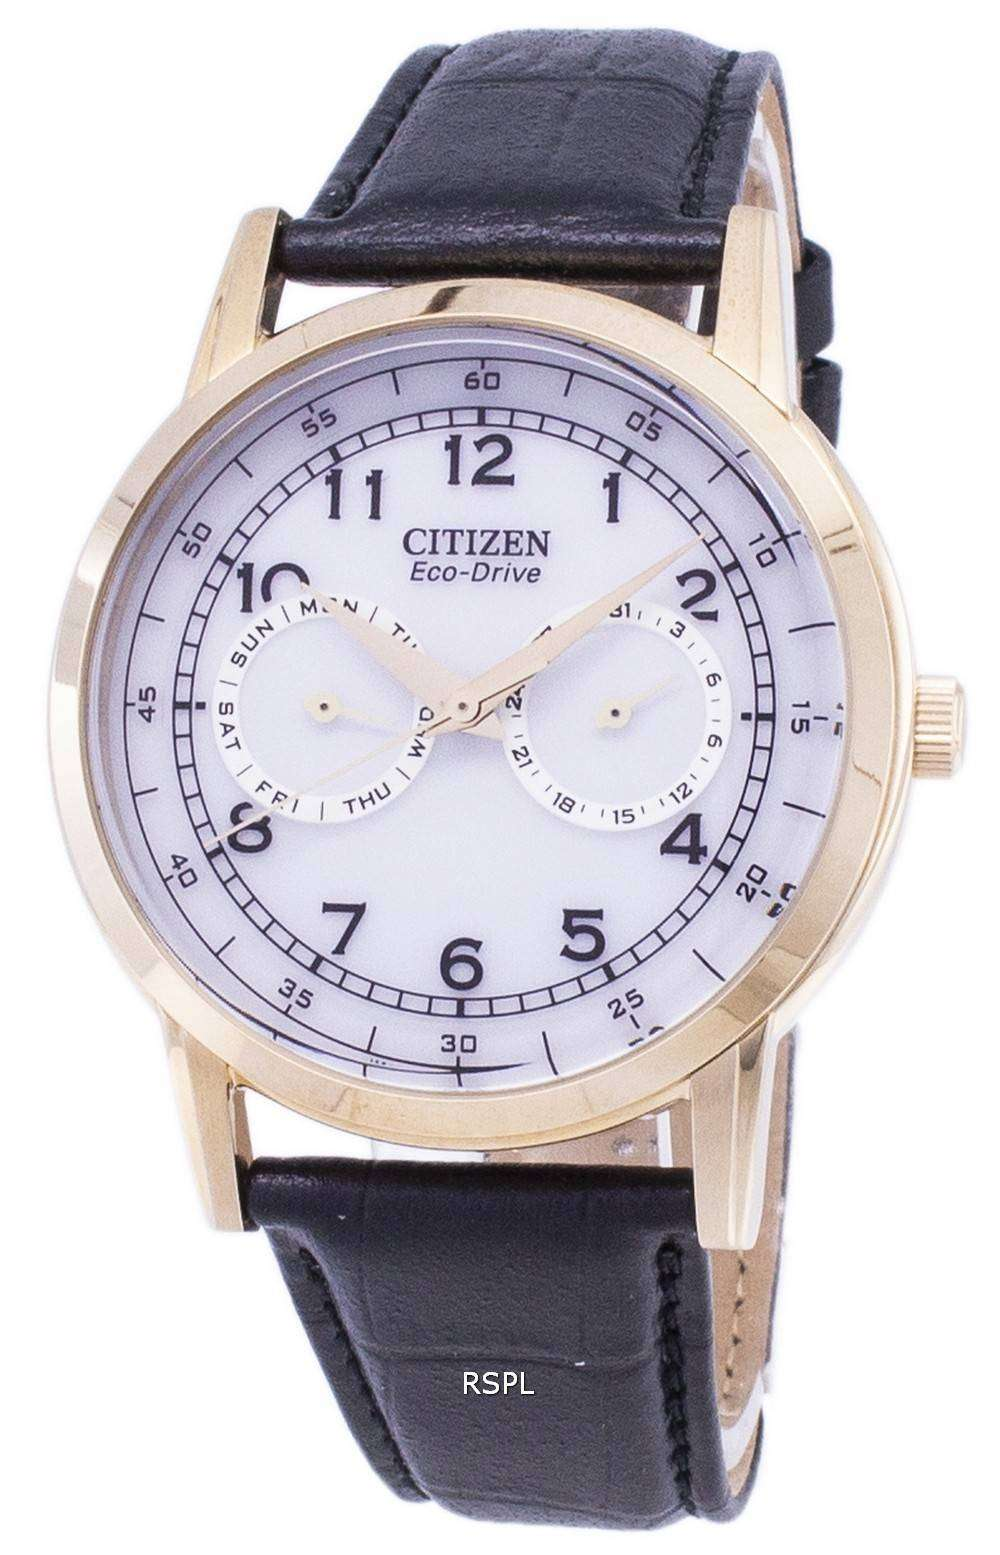 premium selection 45778 48531 Citizen Eco-Drive Day And Date Sub-Dials AO9003-16A Men's Watch